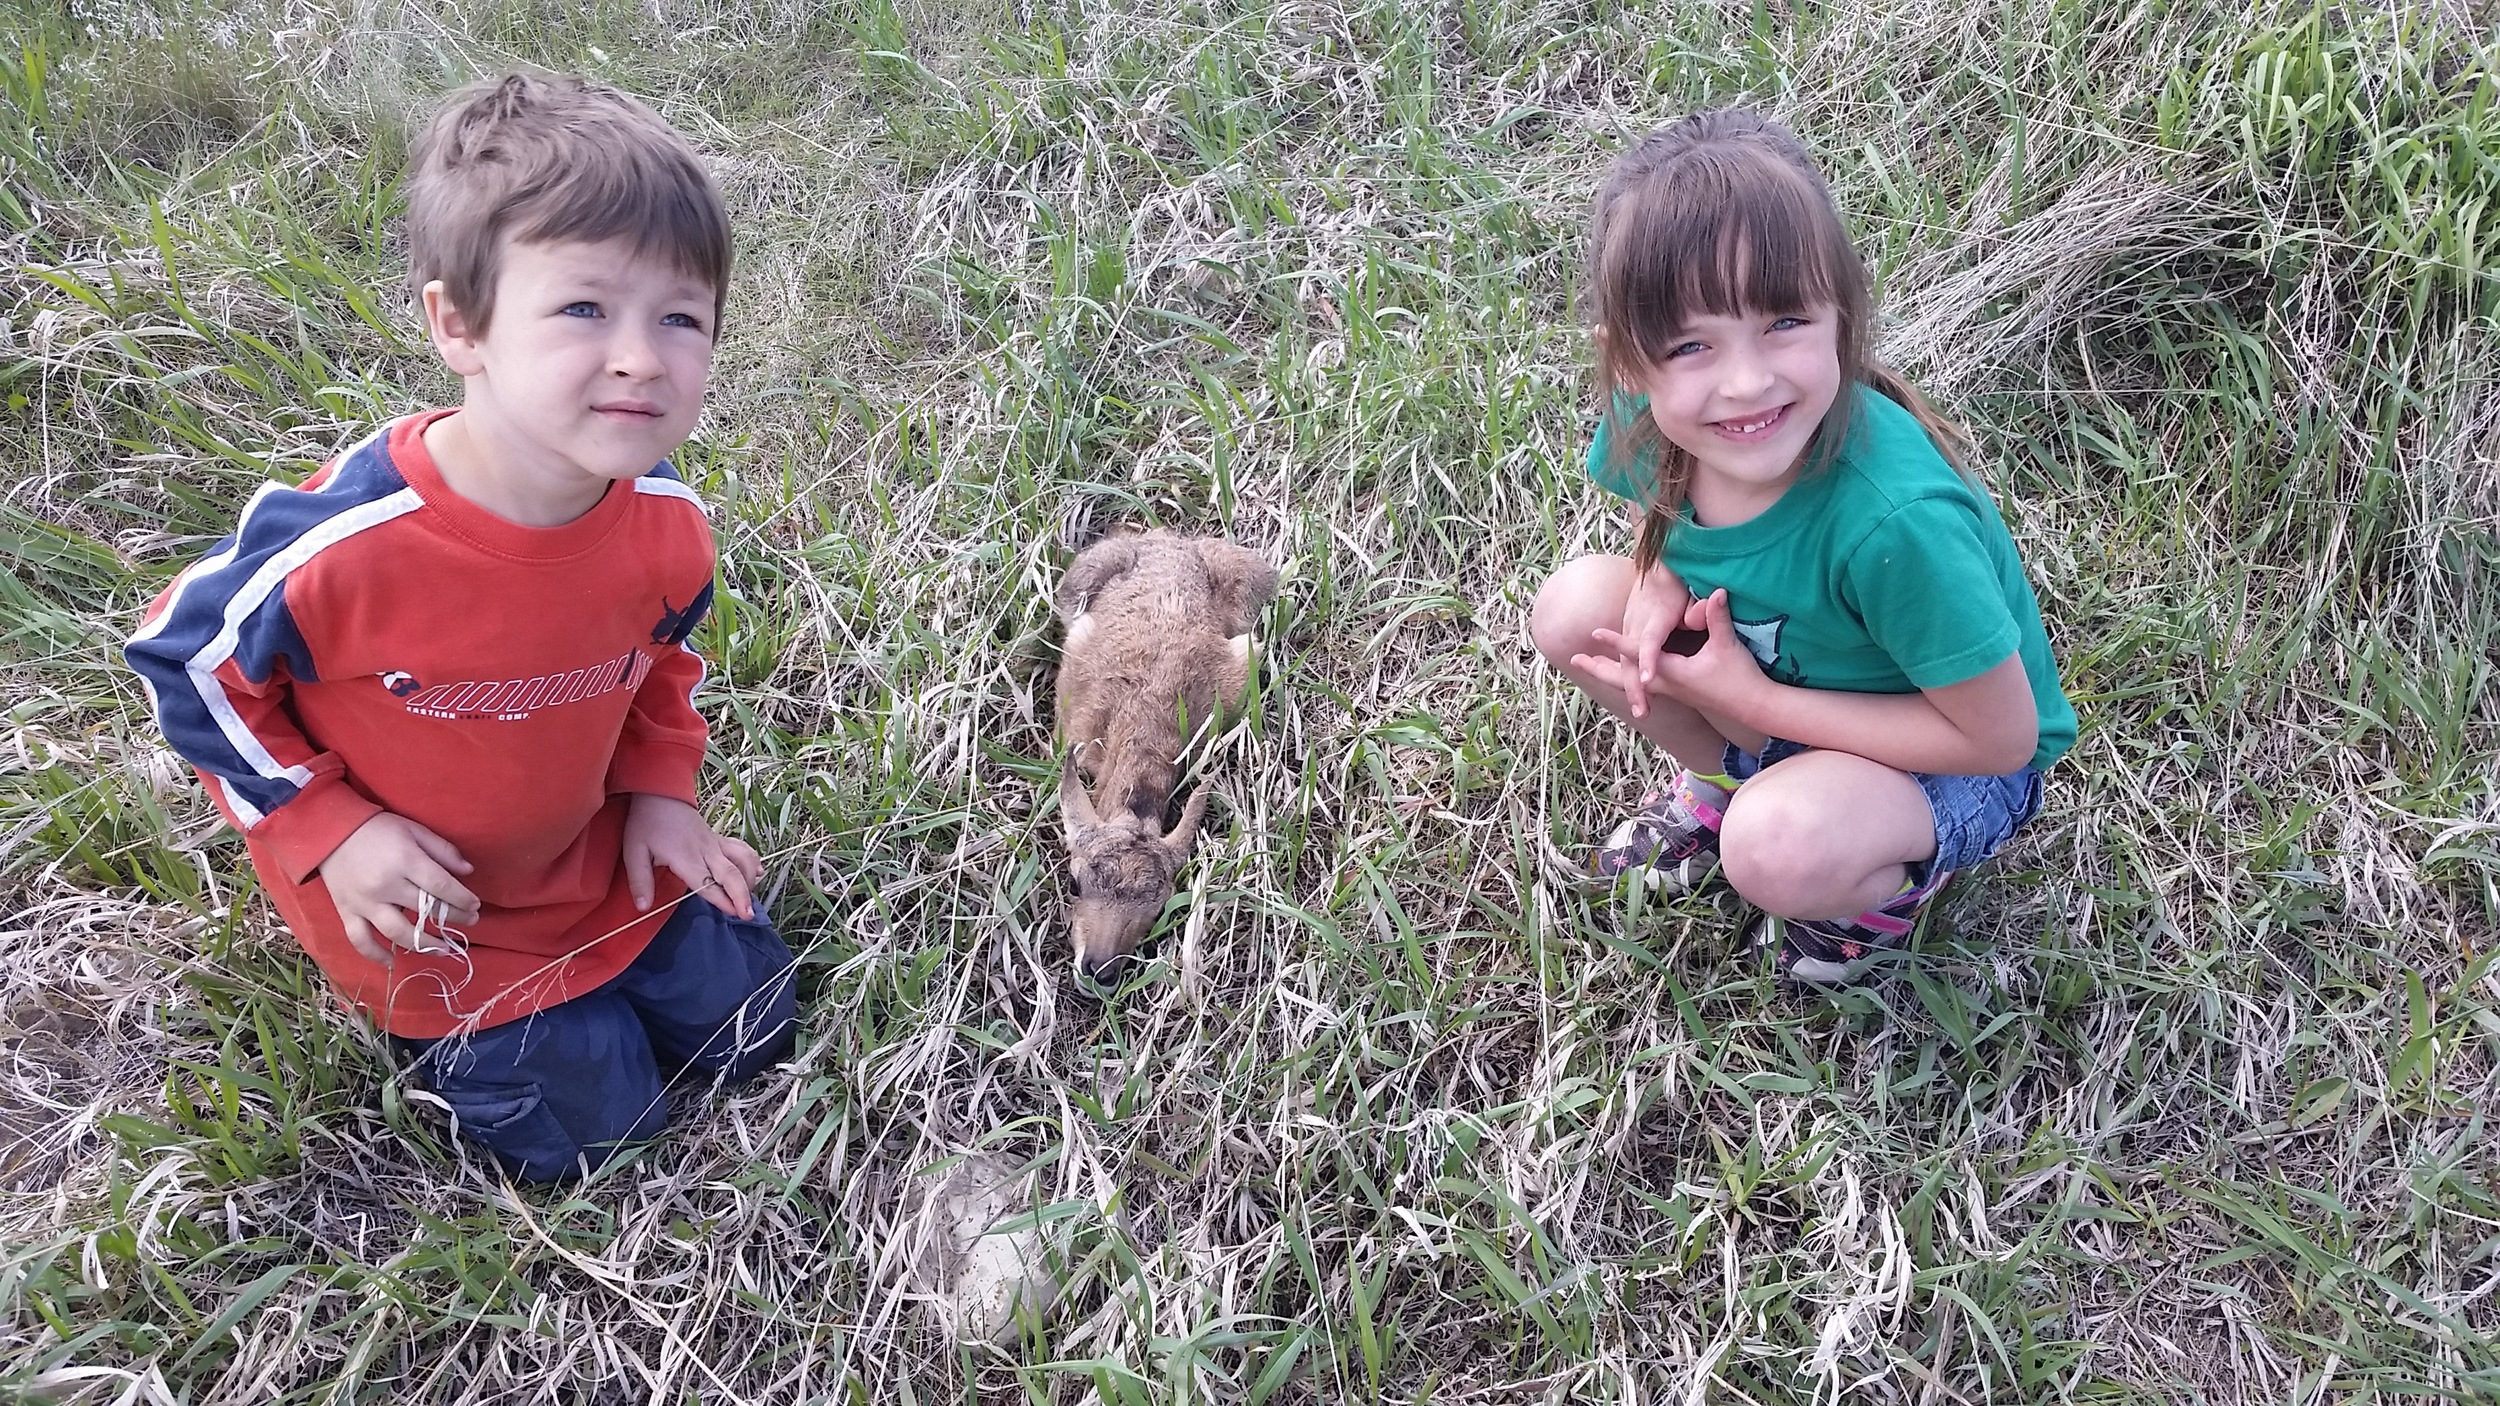 The kids found a baby Antelope on the farm.